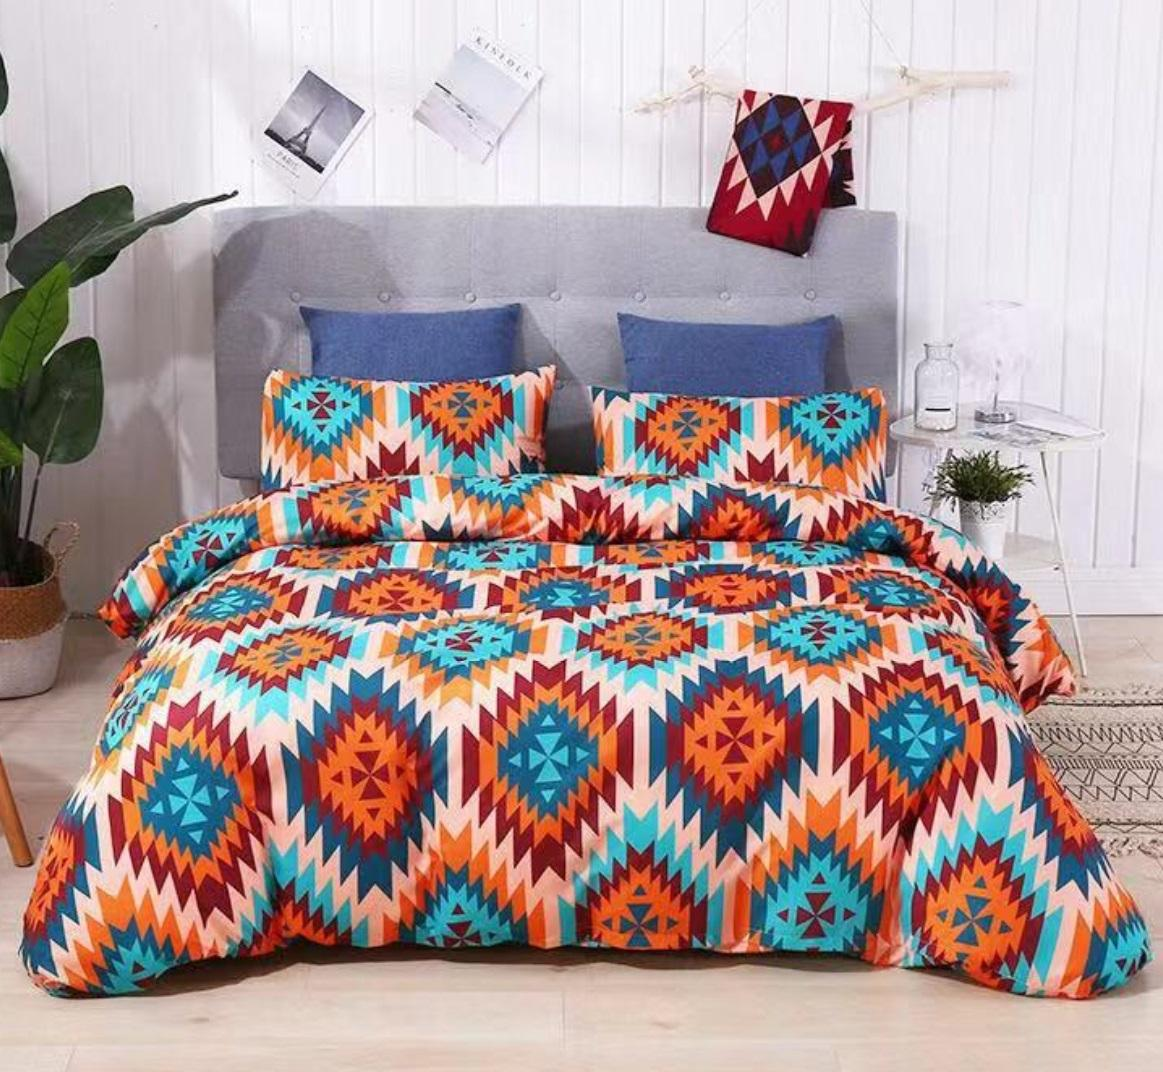 Quilt and pillows- Luxury microfiber comforter set - patchwork duvet cover- sheet set in bedding packaging